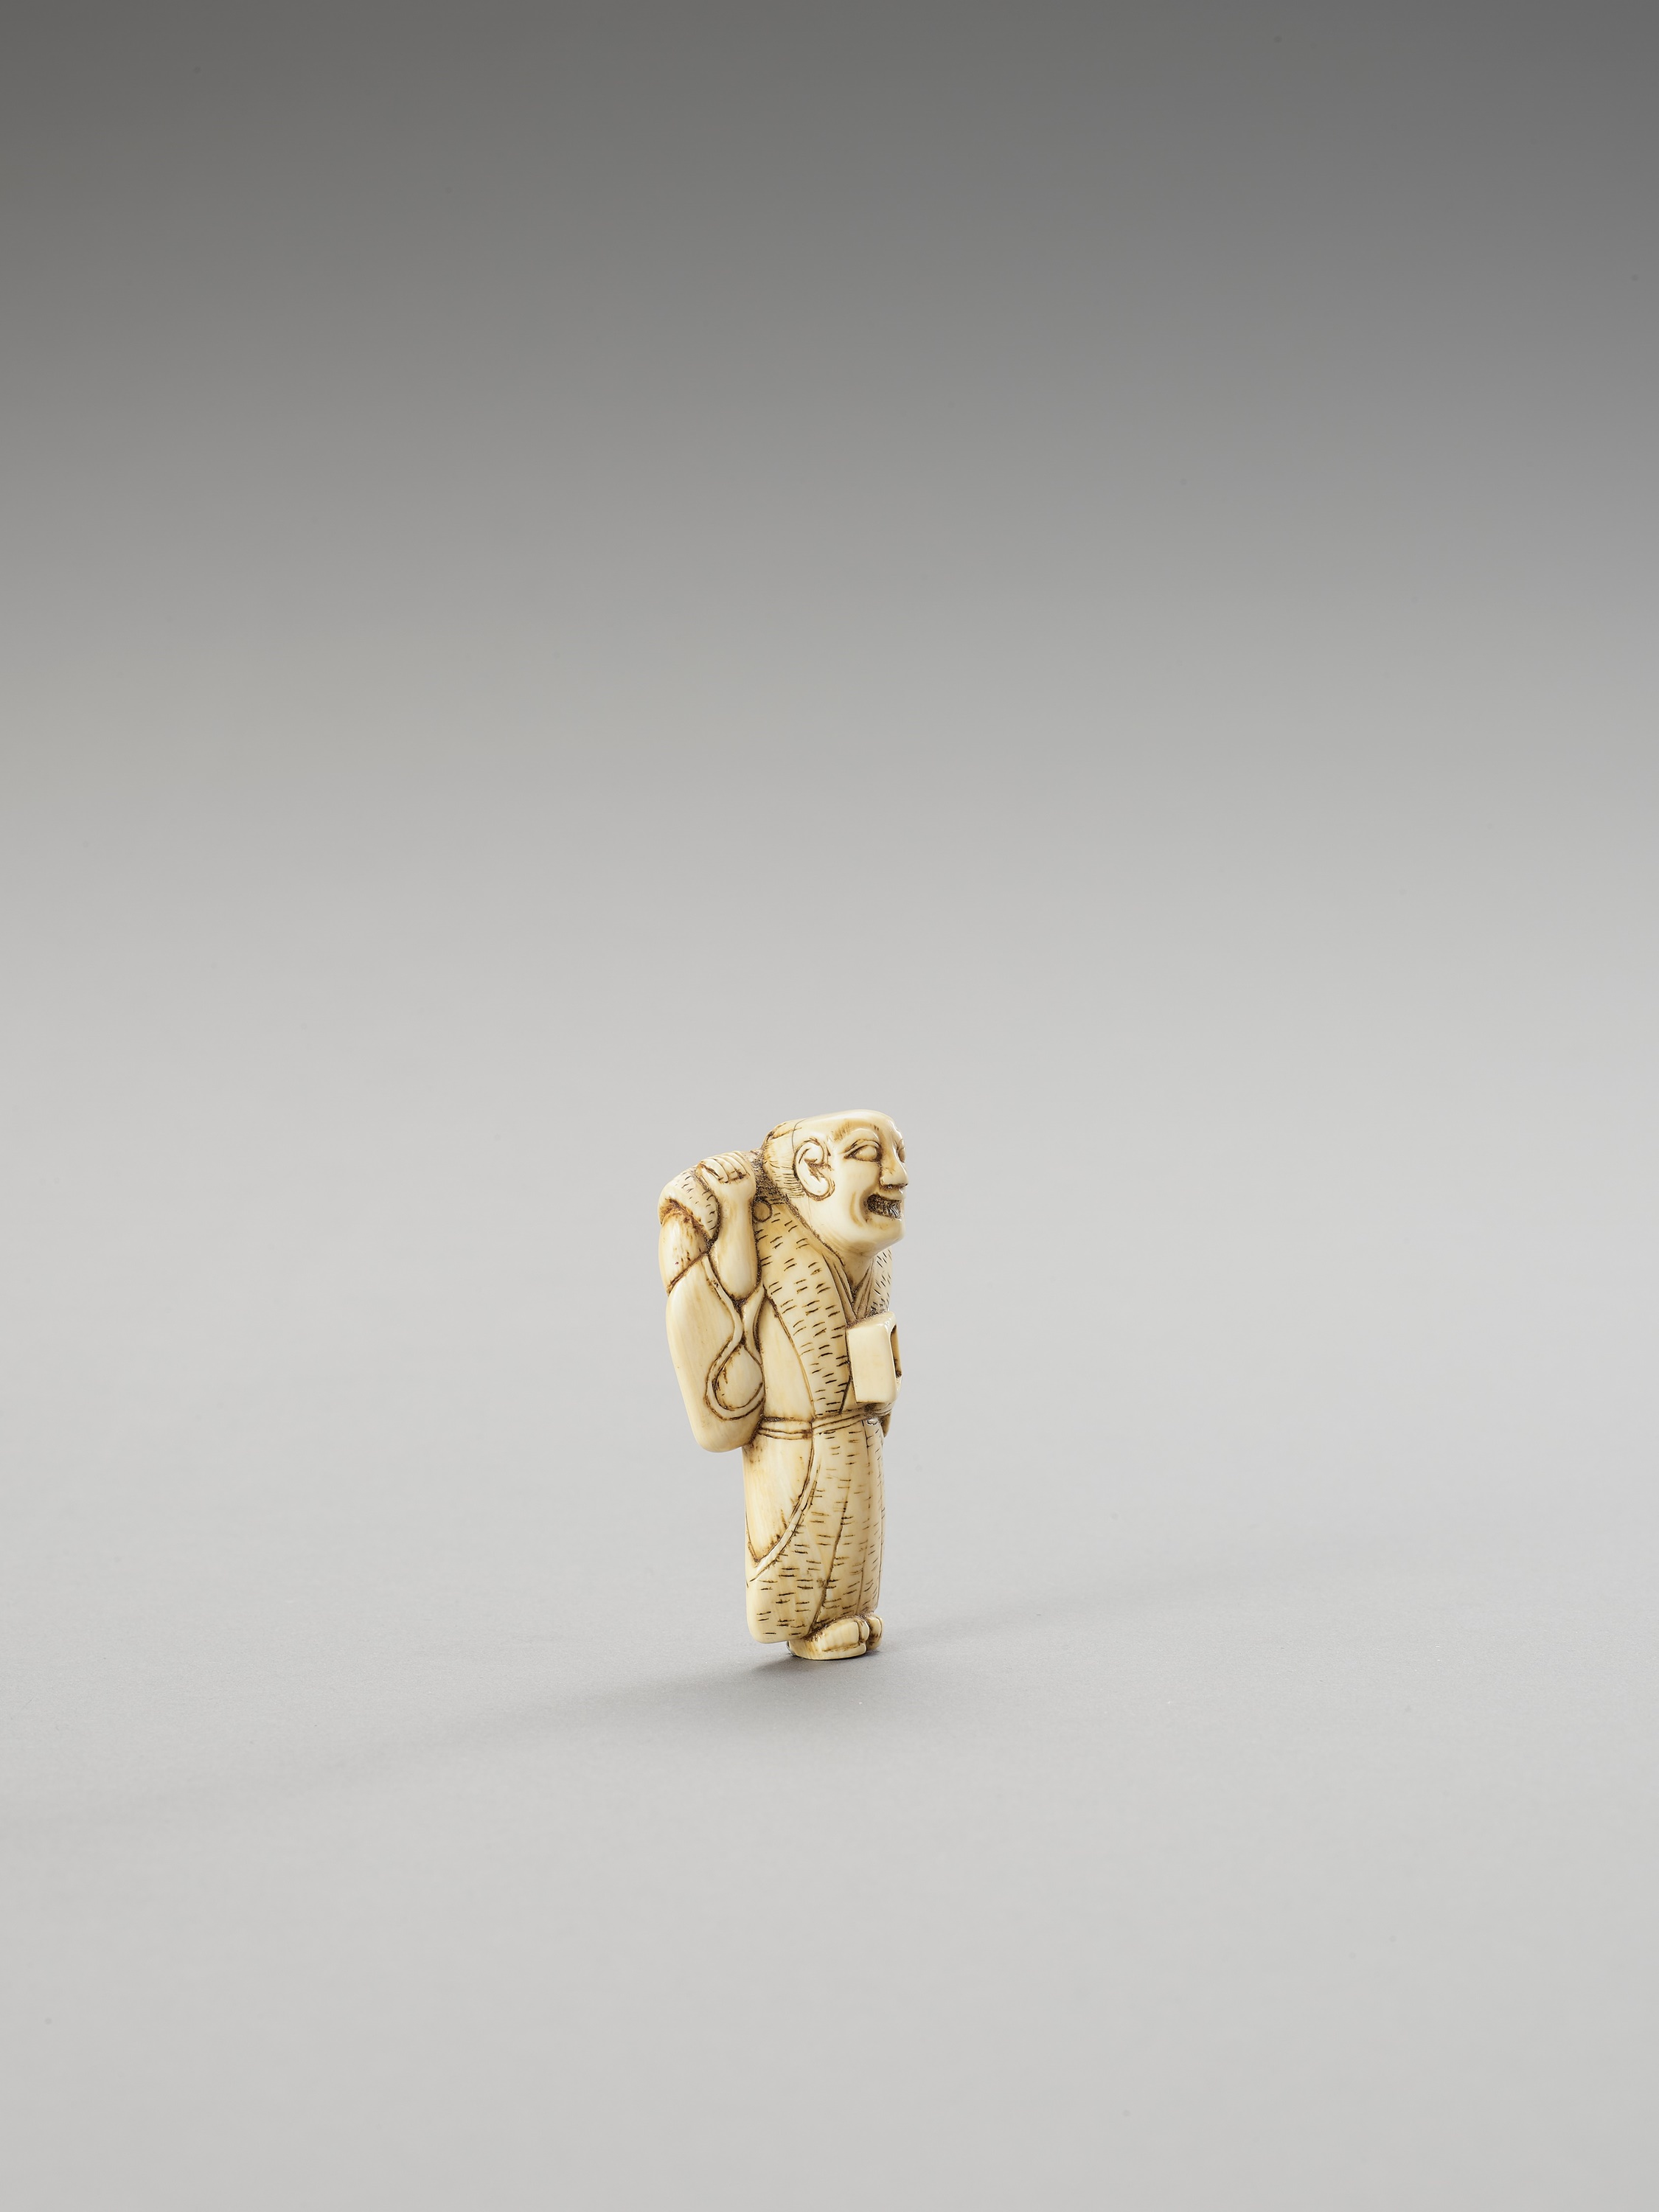 AN IVORY NETSUKE OF A MAN THROWING ROASTED BEANS - Image 3 of 3